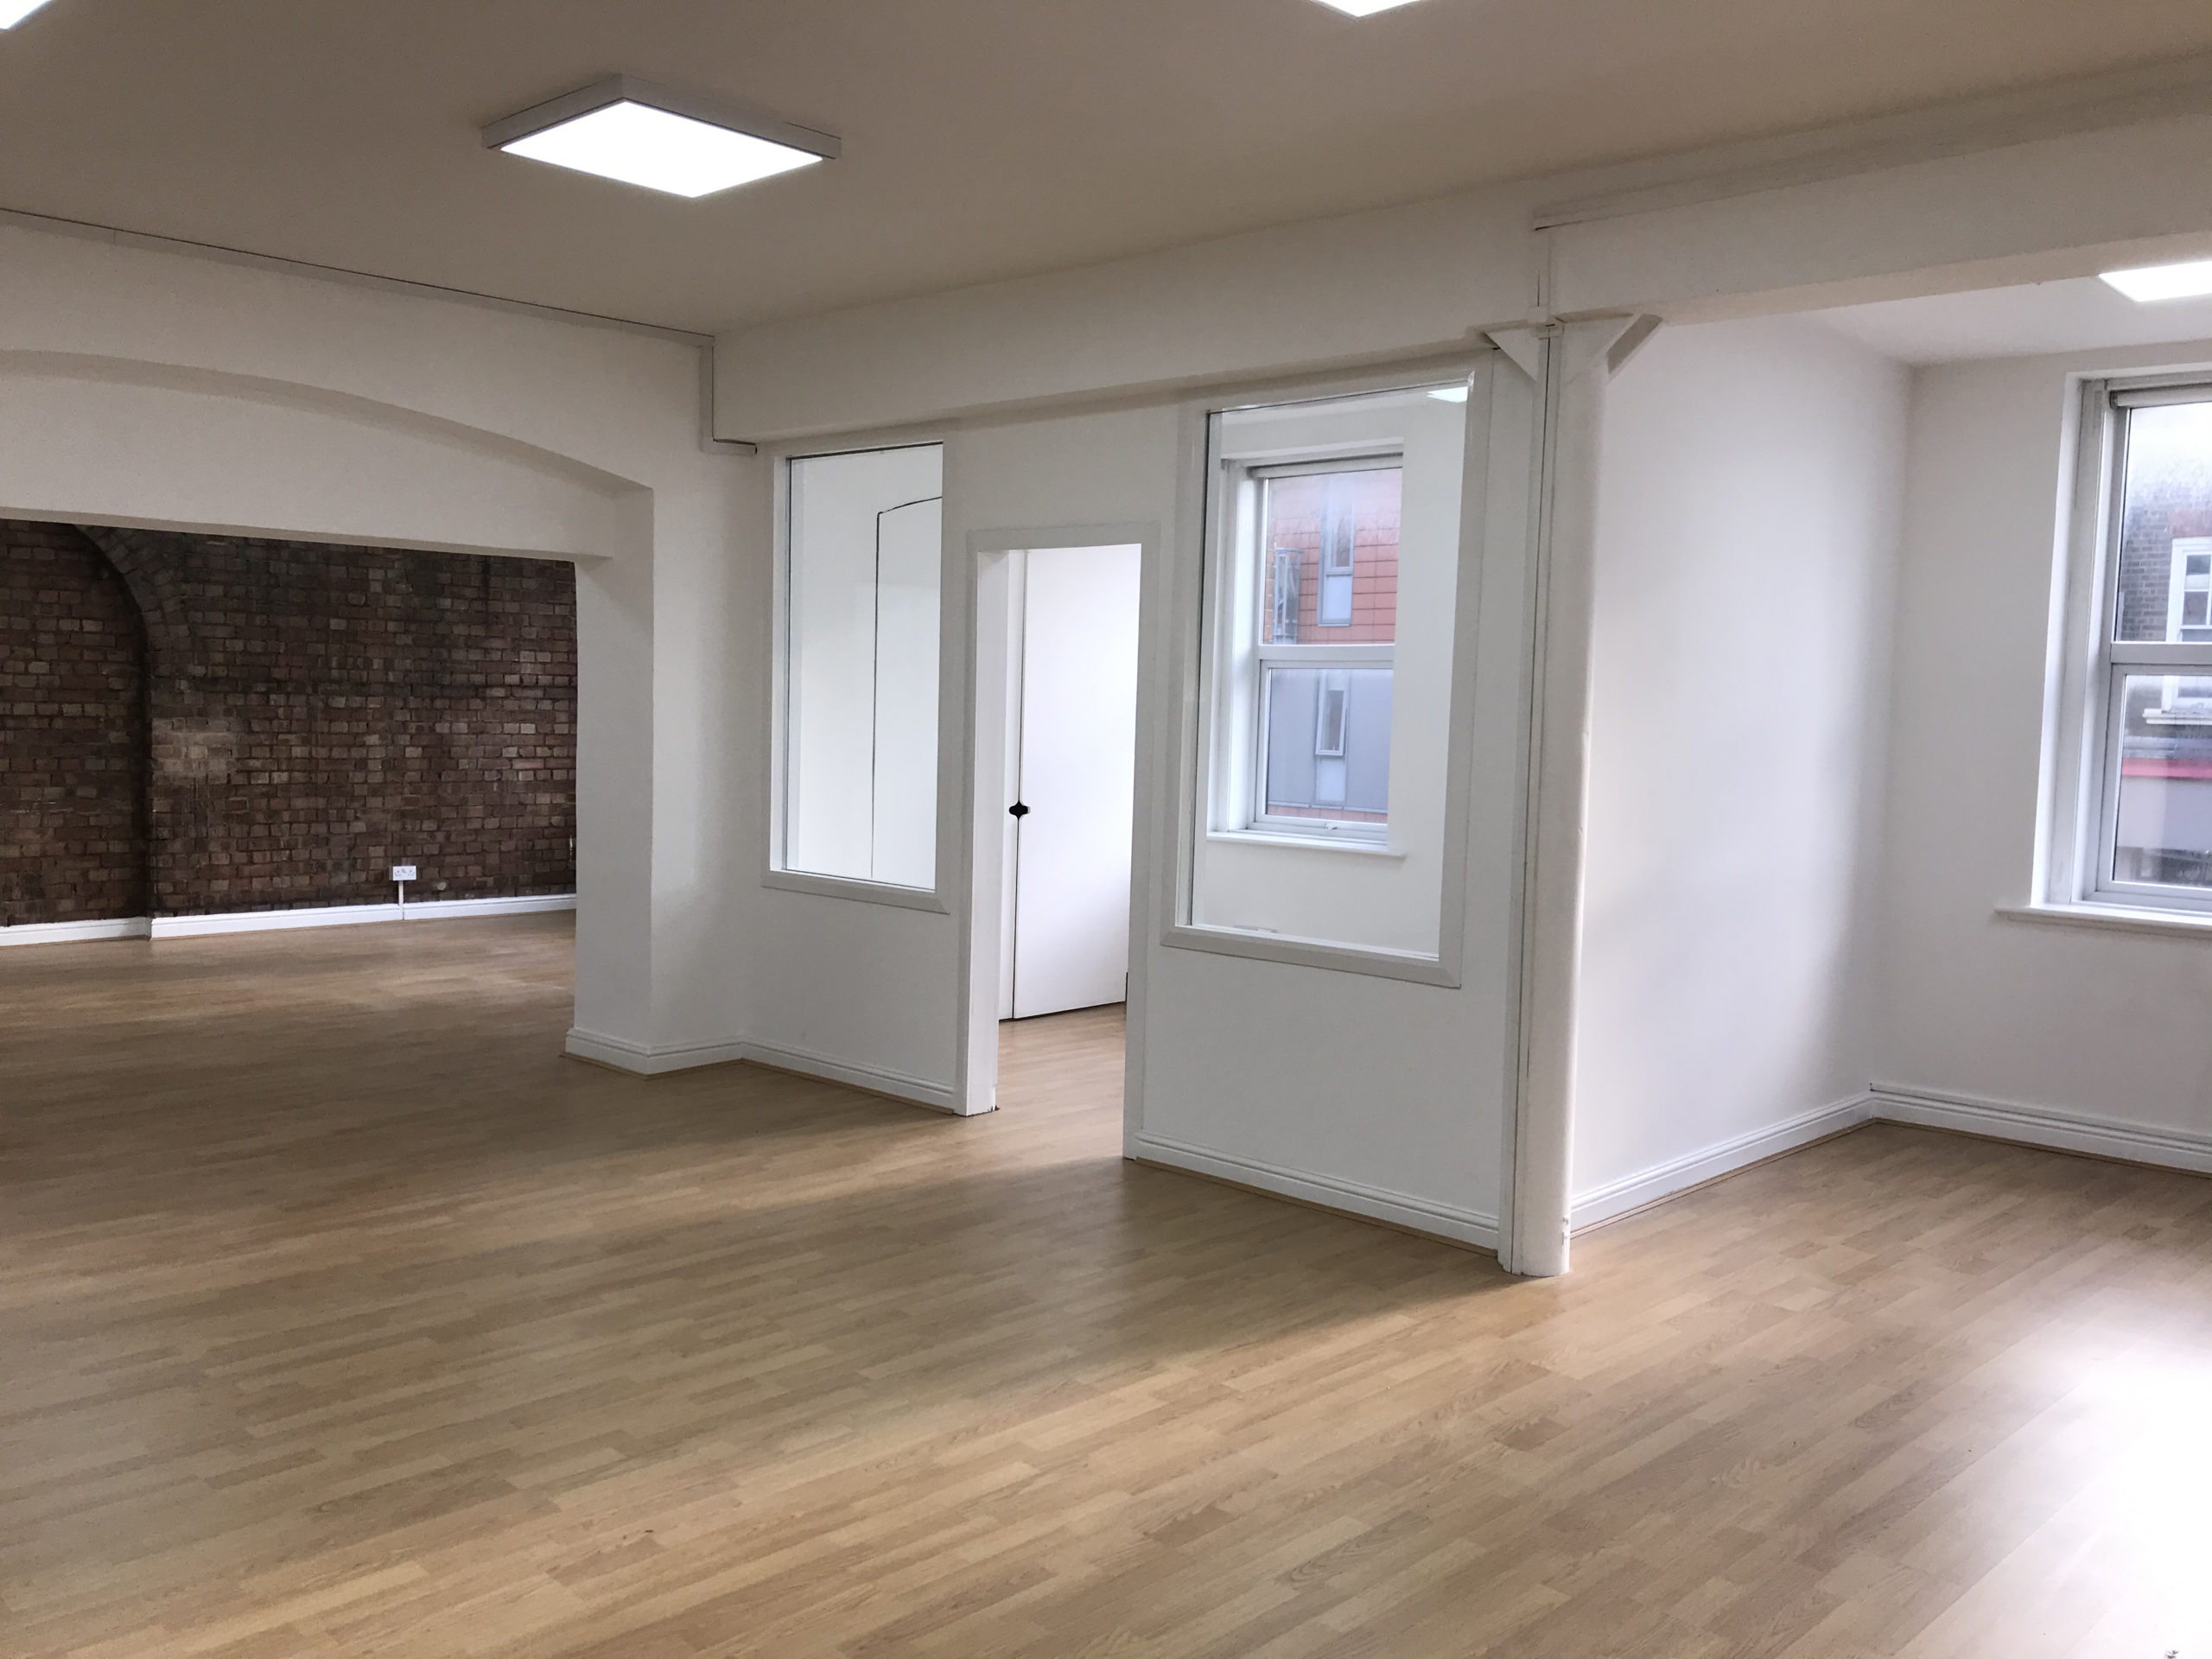 172 ARLINGTON ROAD NW1, 1,350 SQ FT OFFICES TO LET